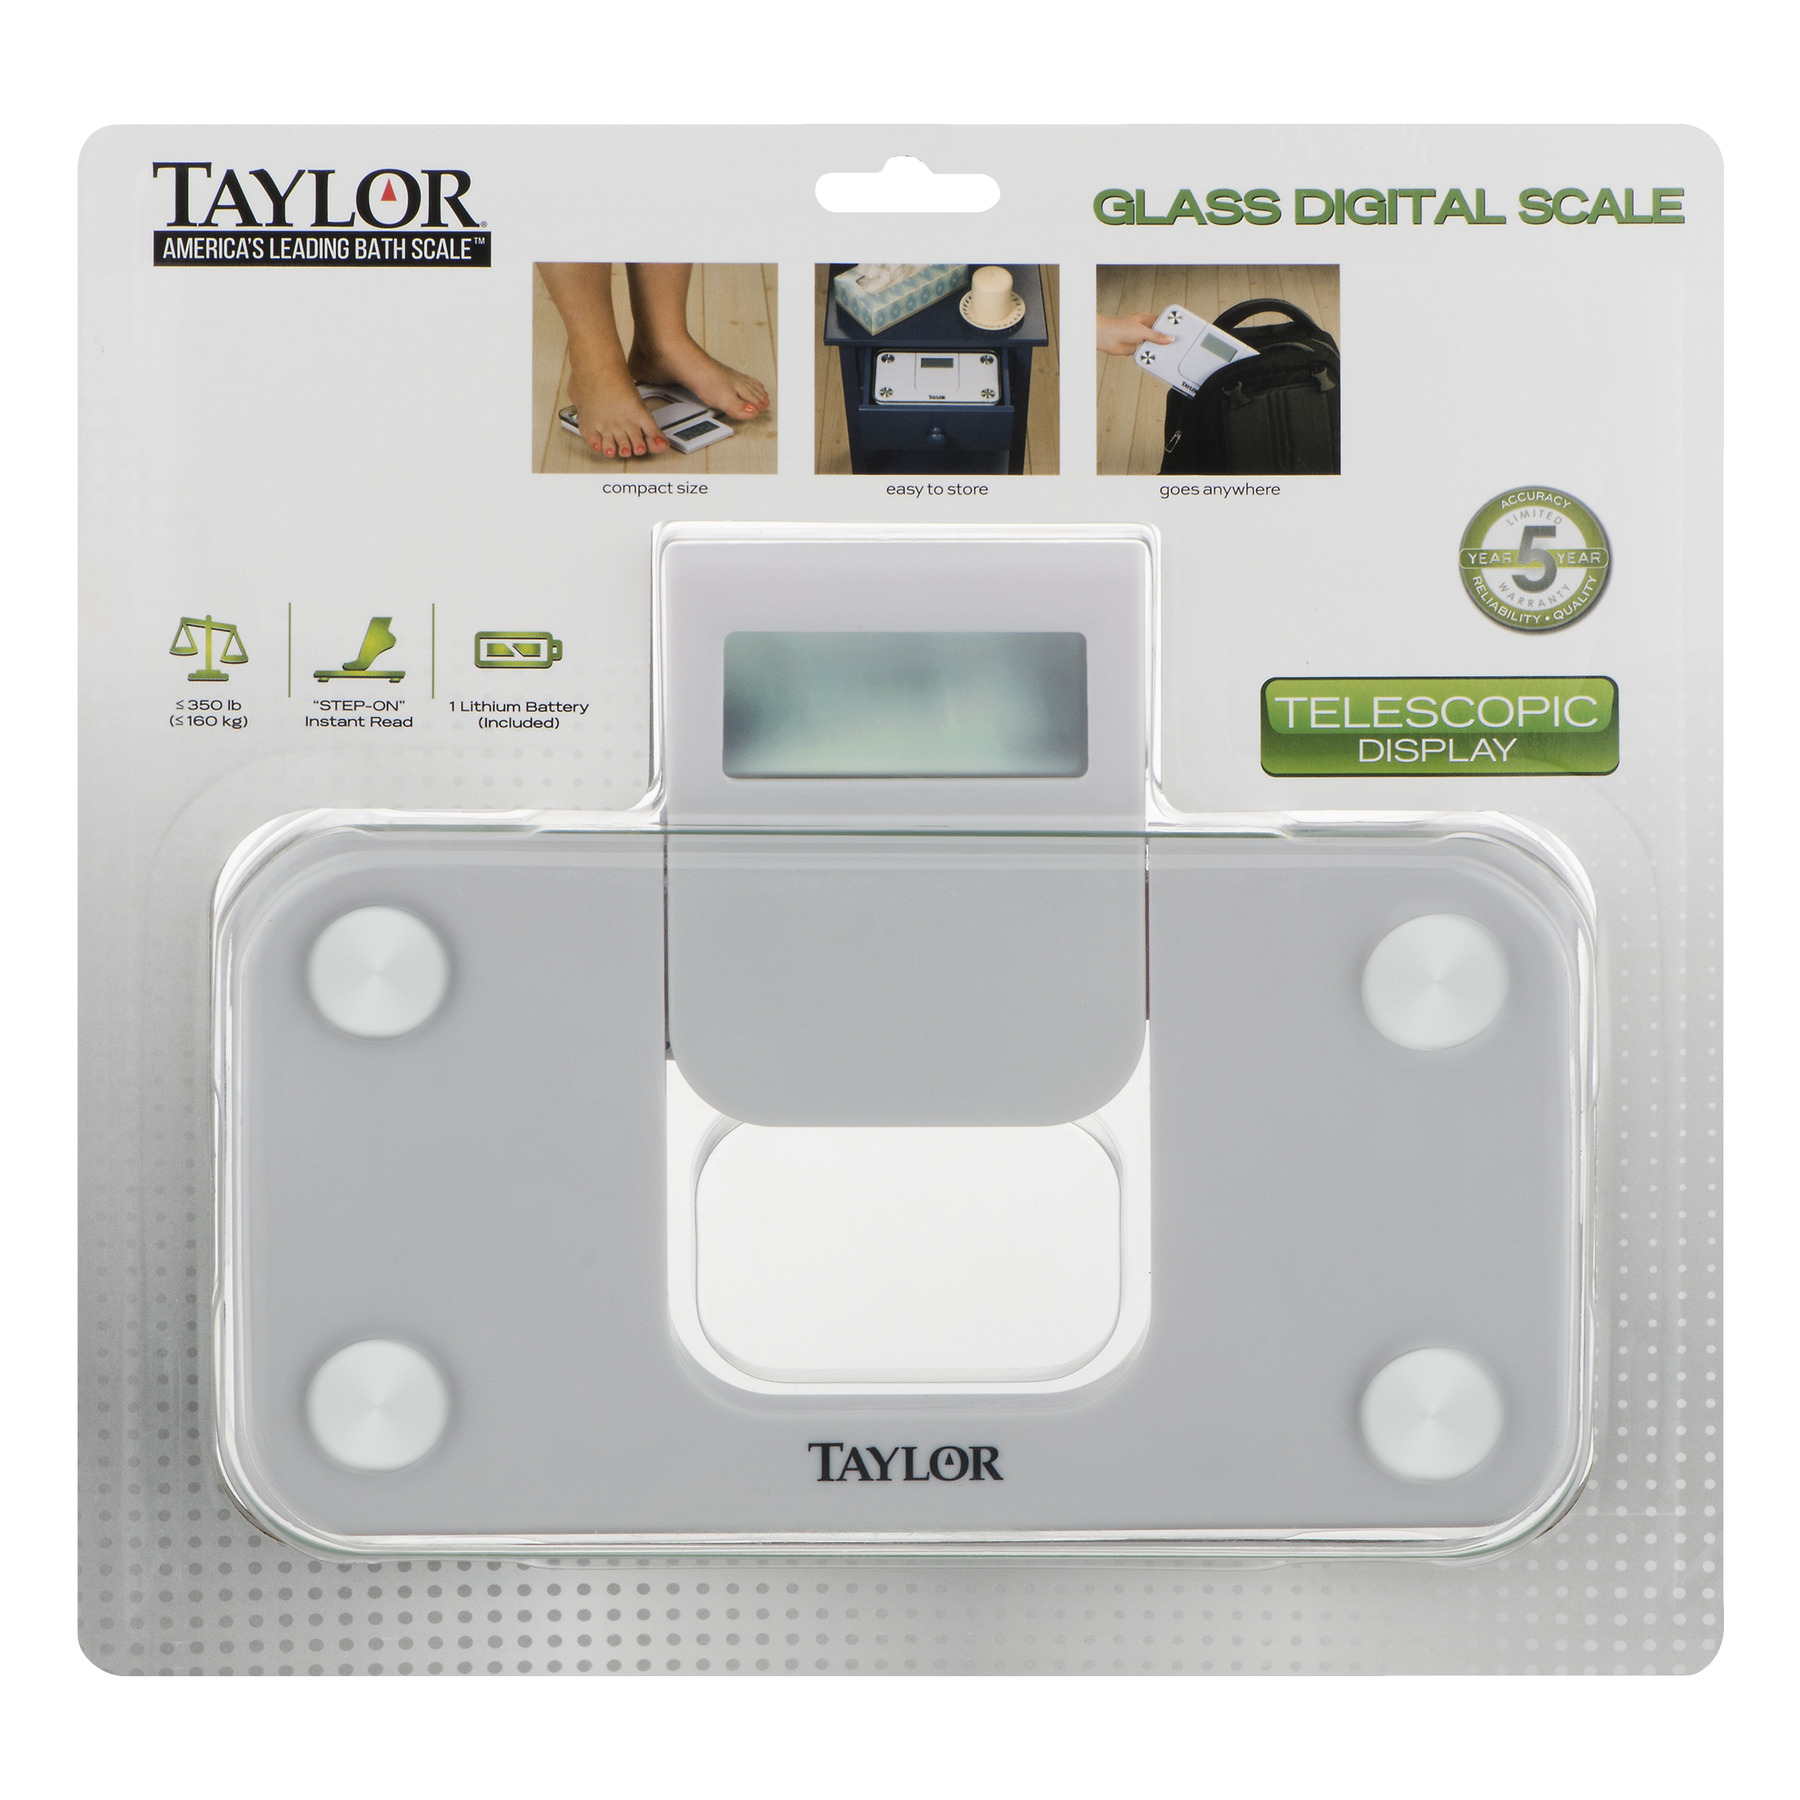 Taylor Glass Digital Scale Telescopic Display, 1.0 CT